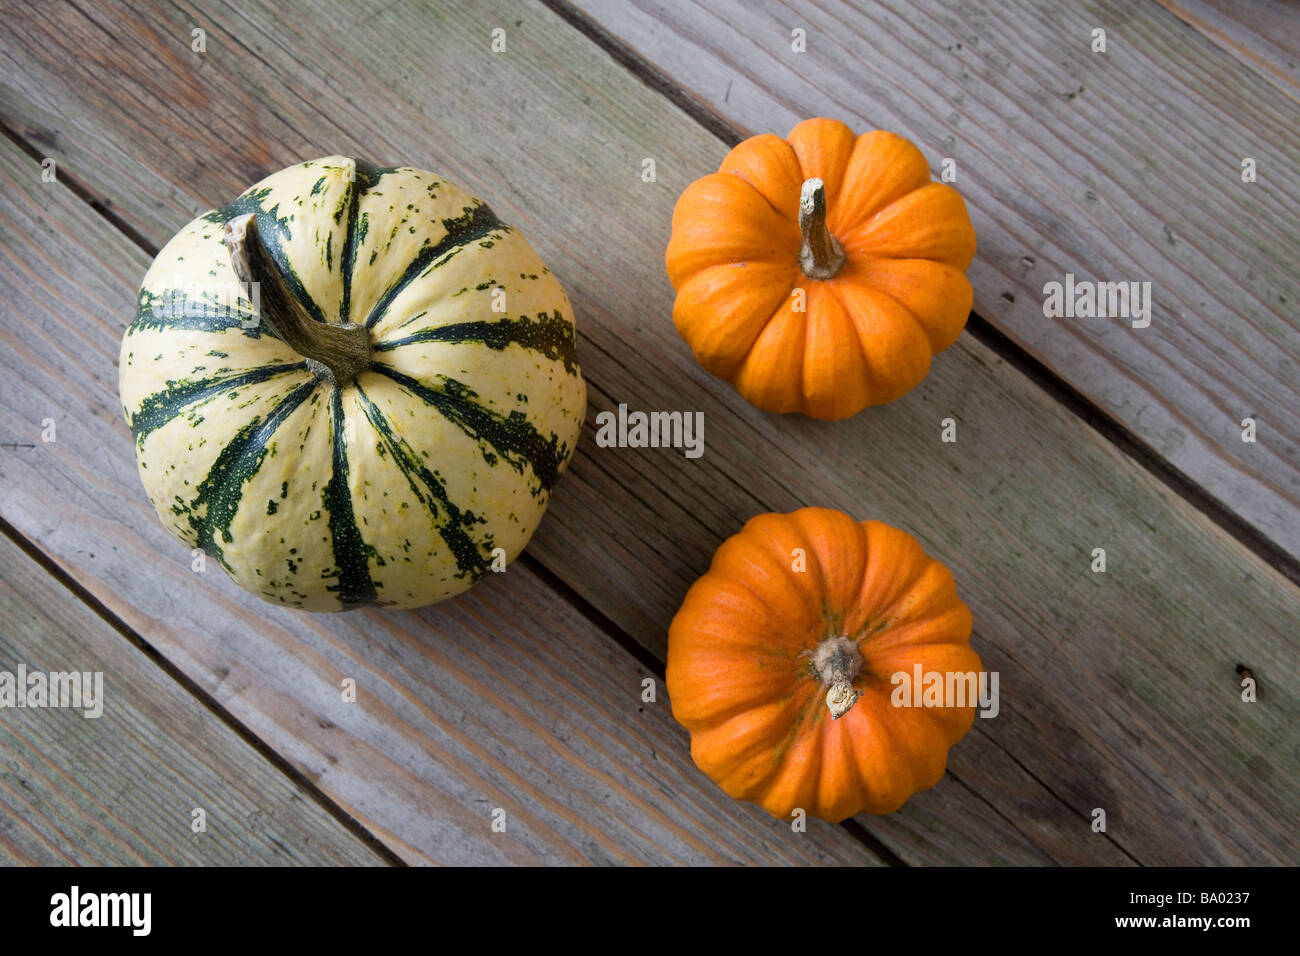 English squashes on wooden table top - Stock Image